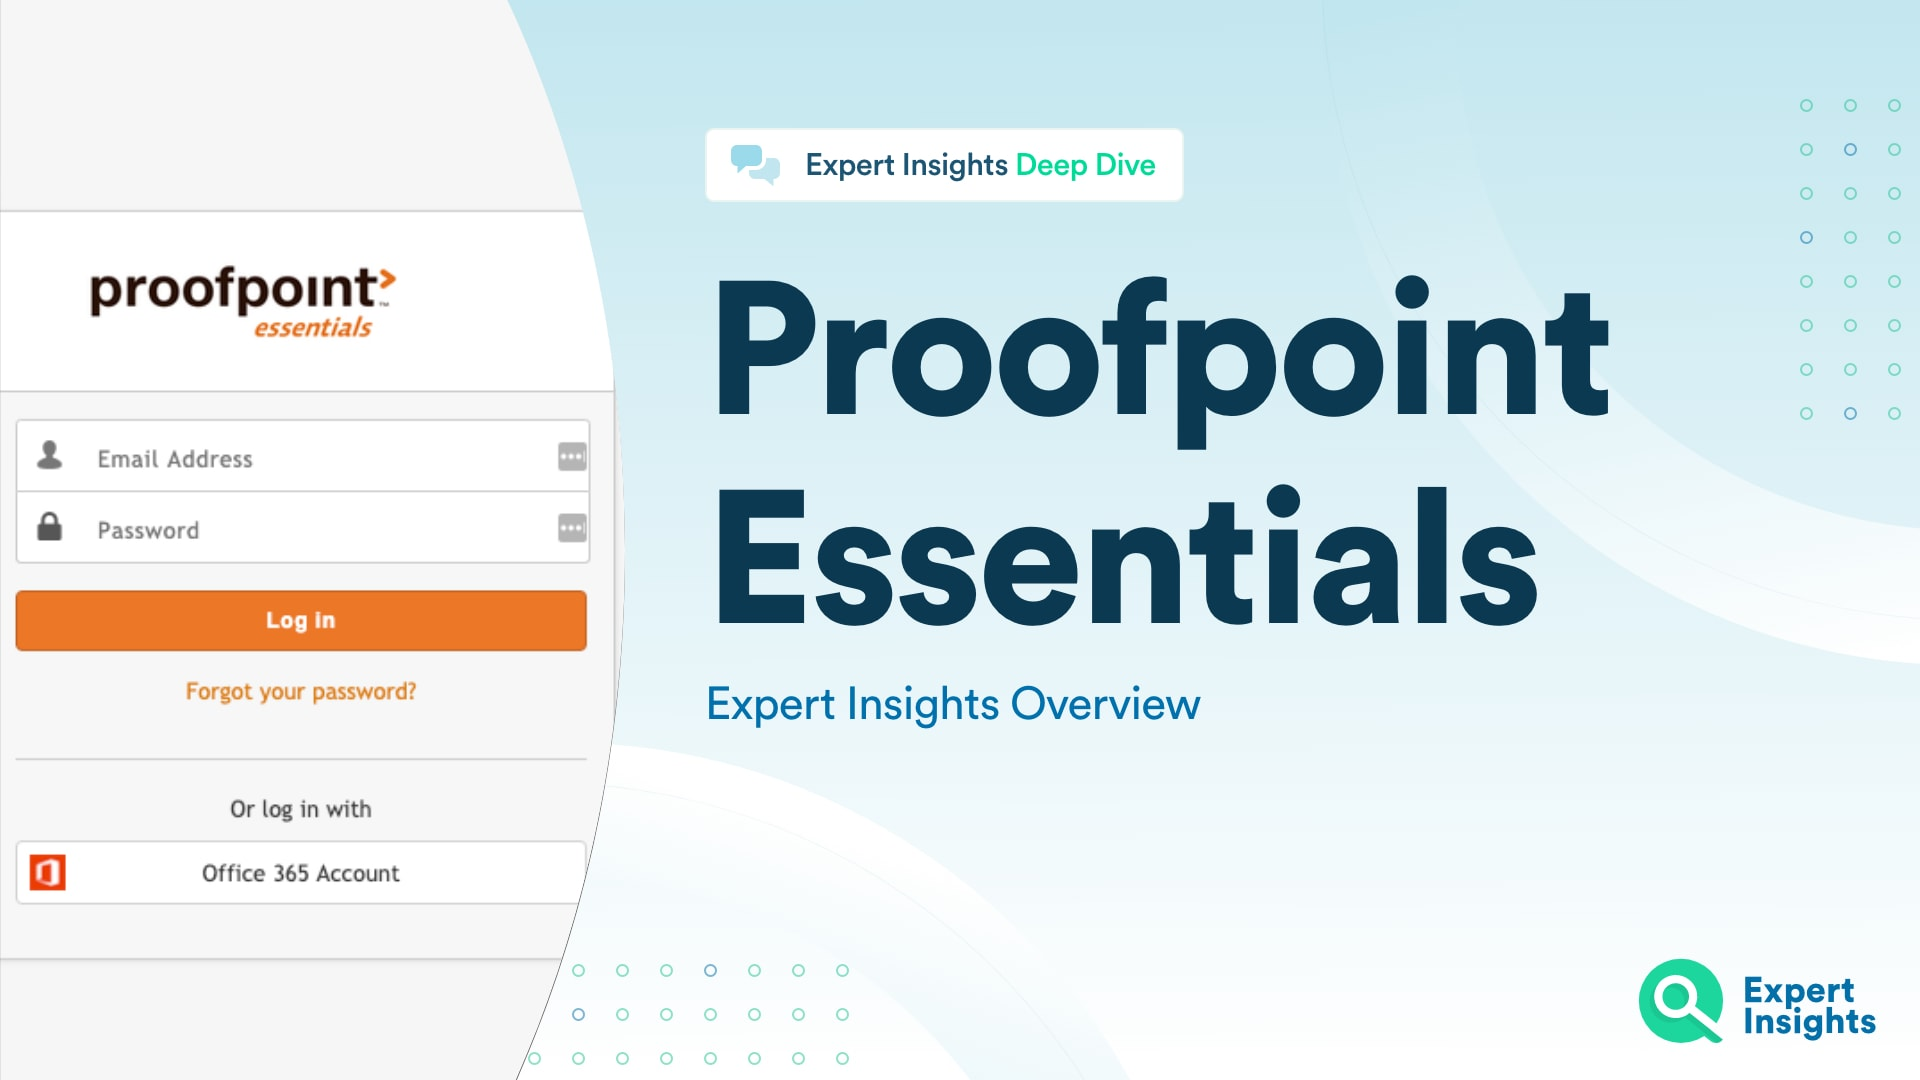 Proofpoint Essentials Overview